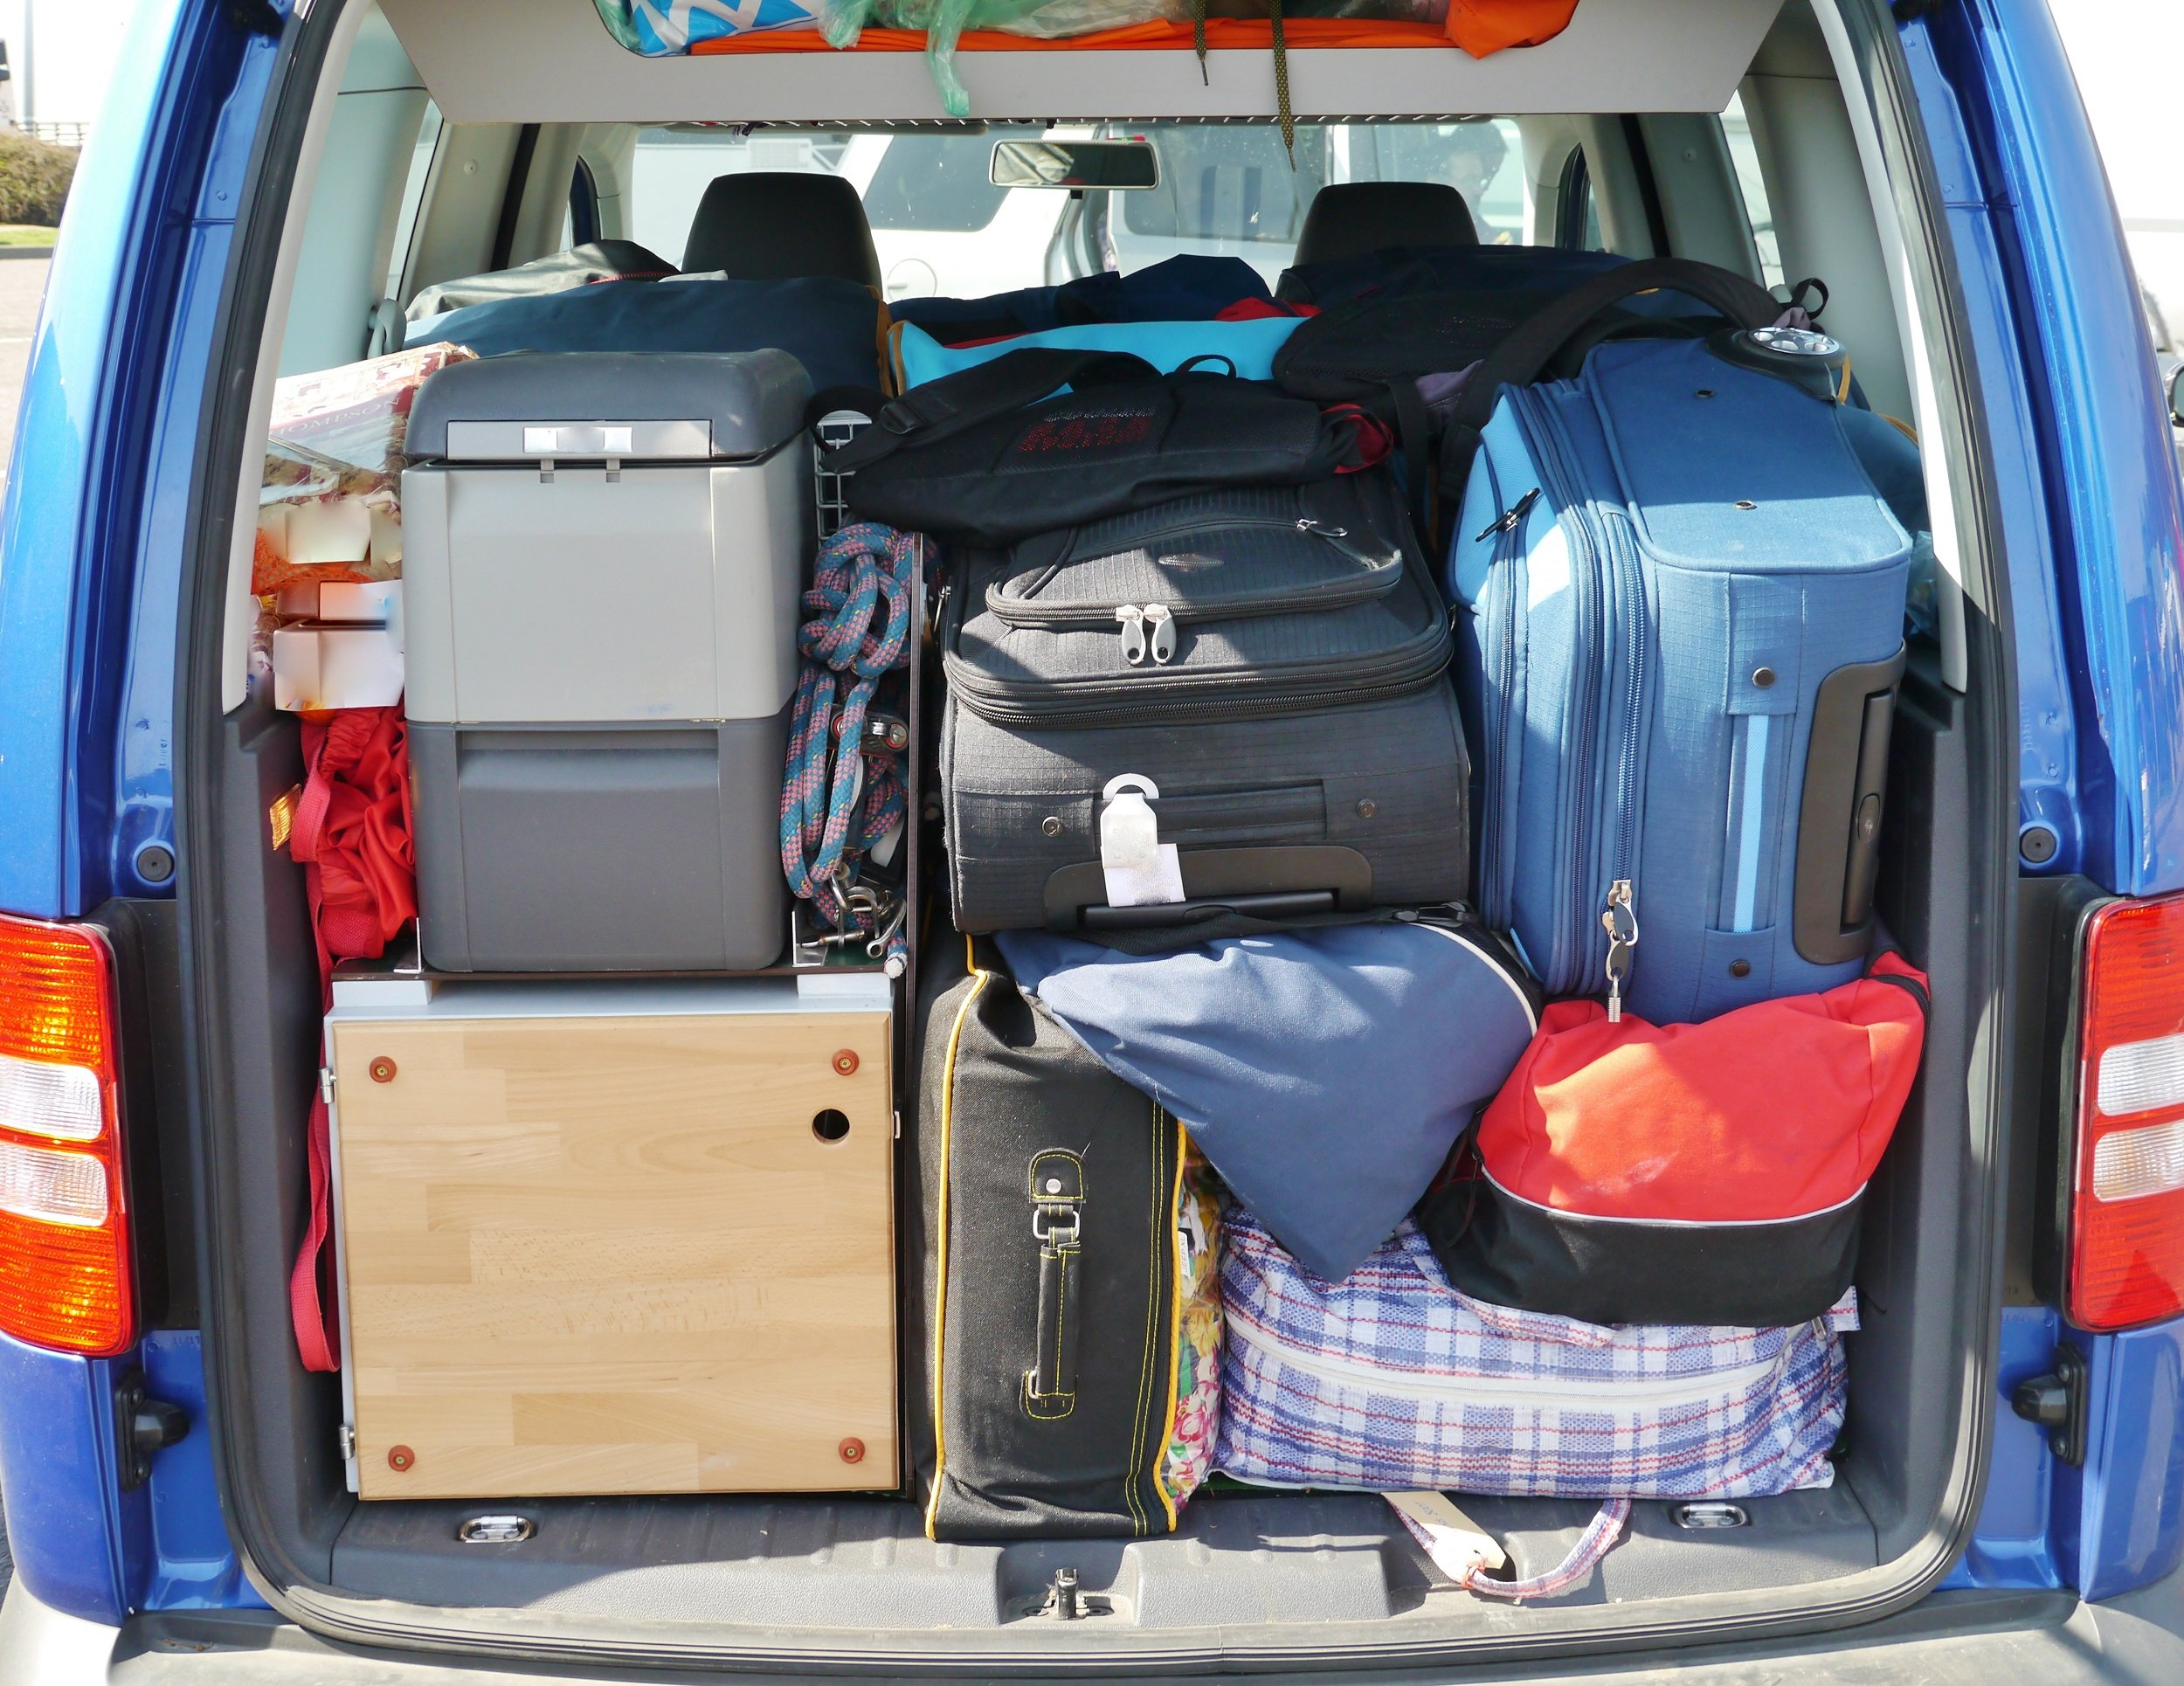 How to Pack Your Car the Tetris Way